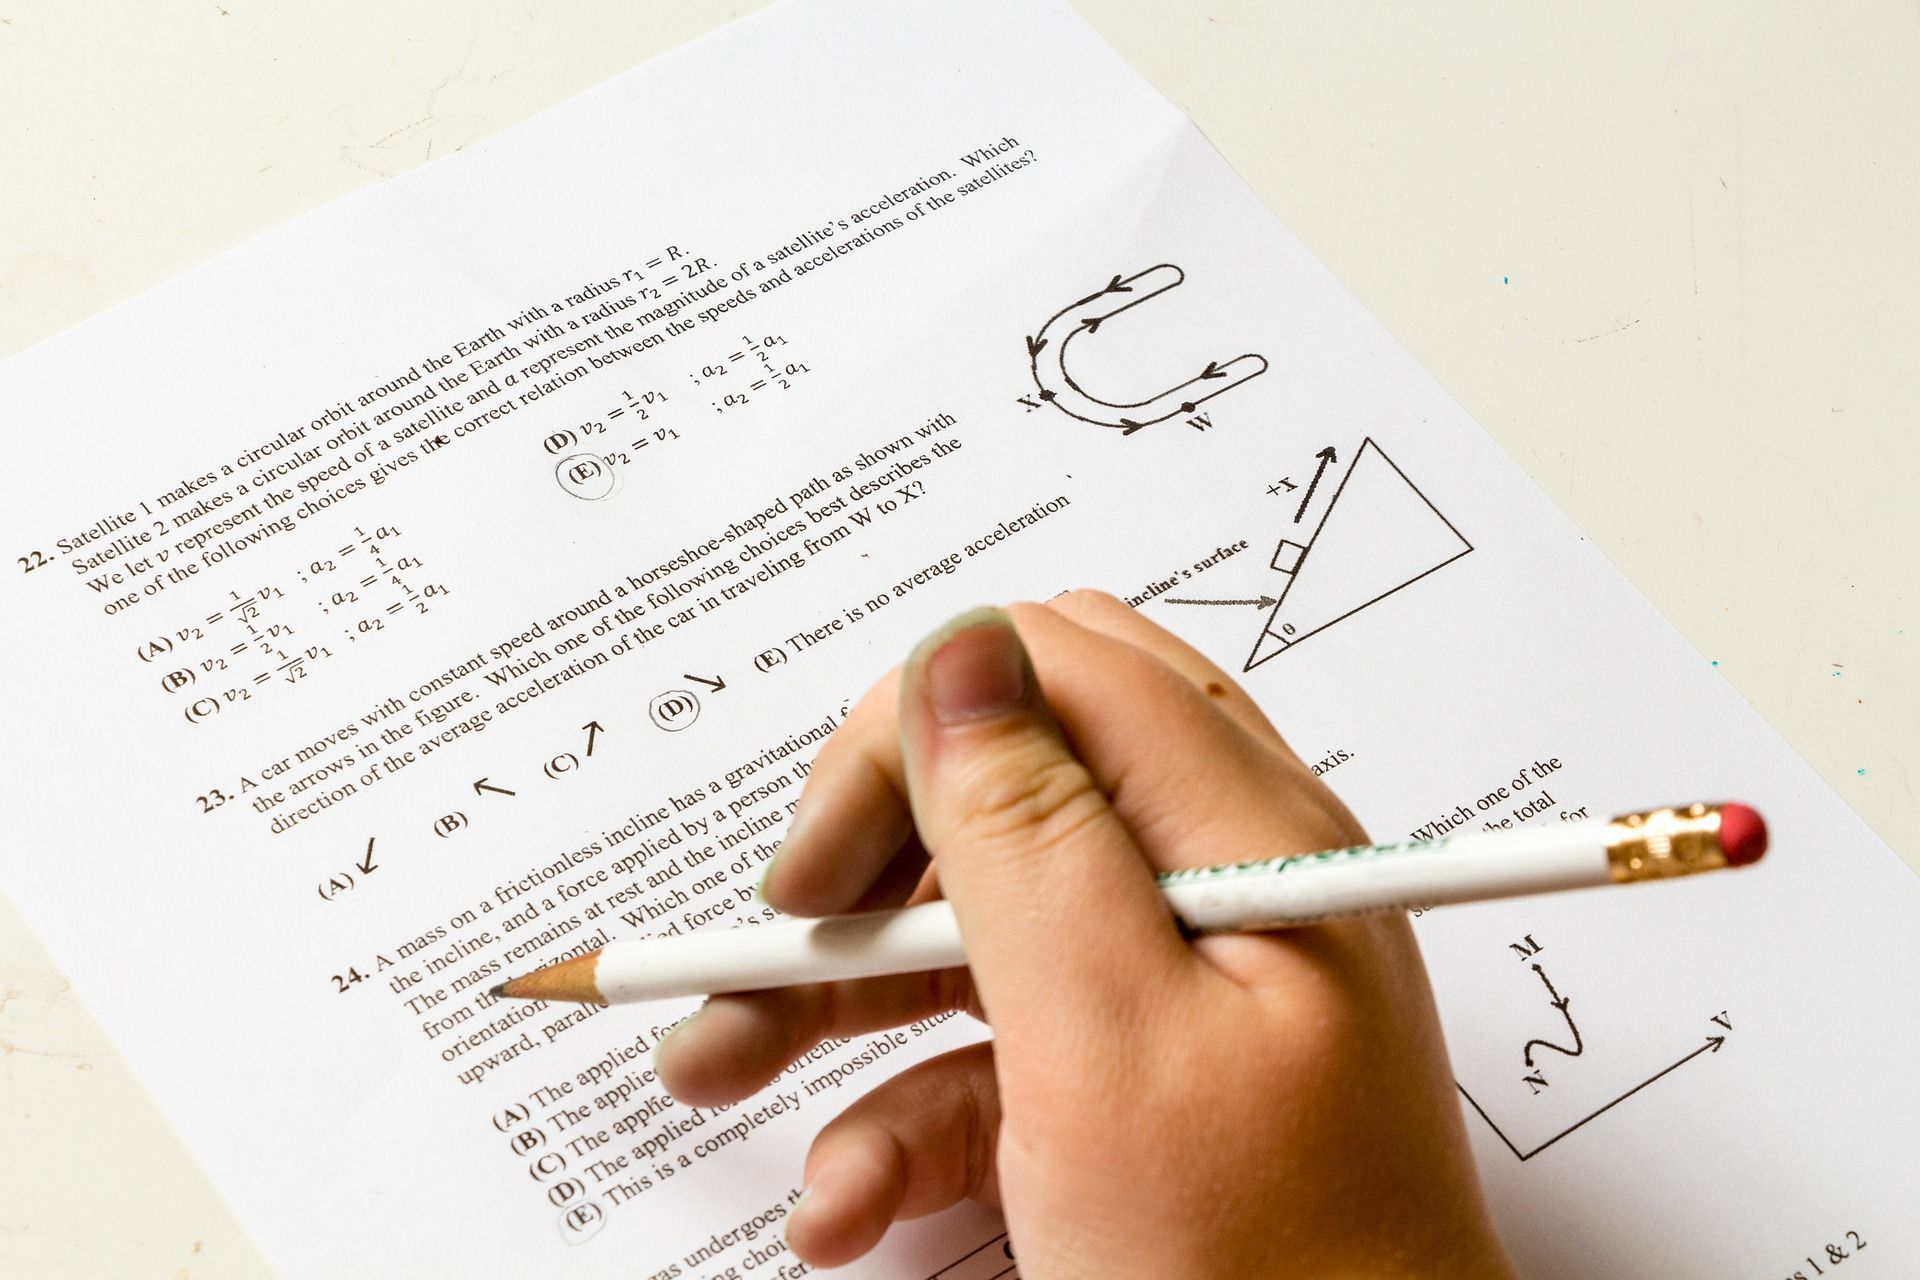 5 Points to Remember While Taking the Board Exam